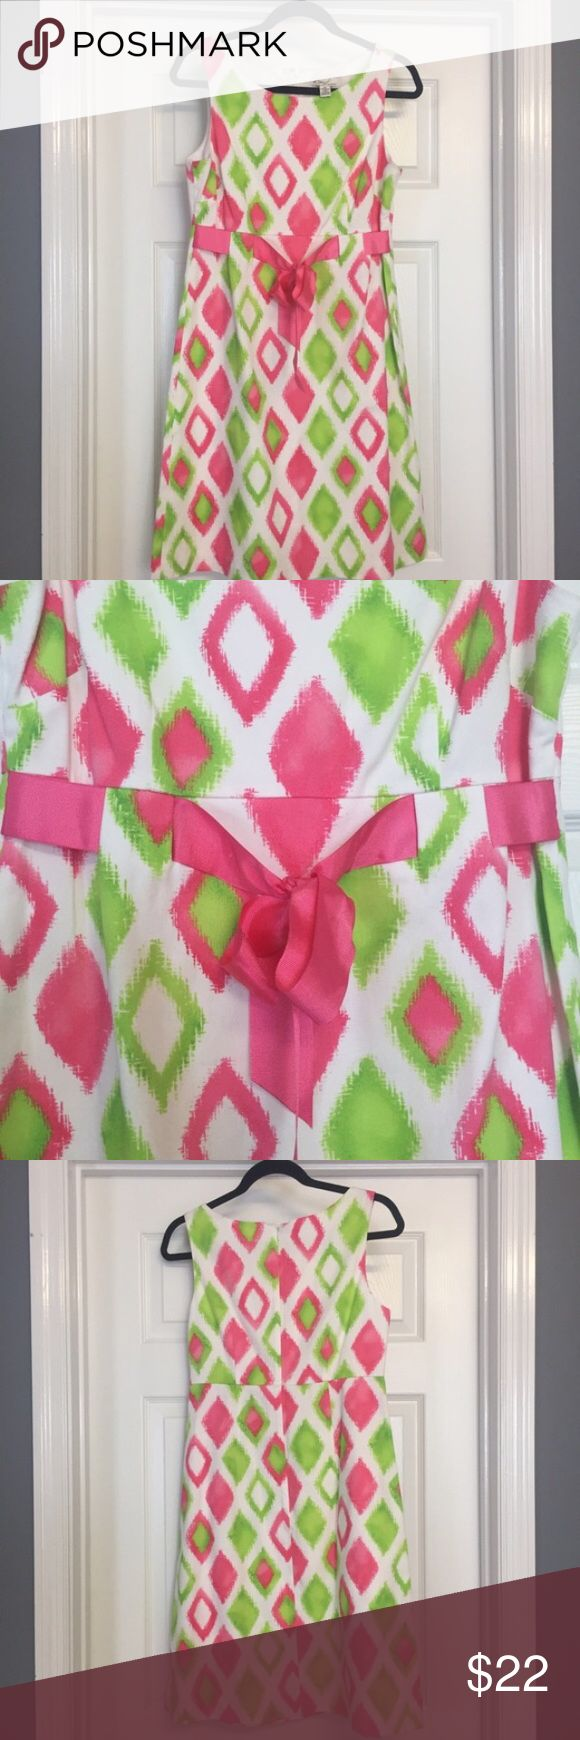 """Pink and green fit and flare dress size 10 Wonderful bright pink and green dress by Kim Rogers in size 10. I would describe this as a fit and flare style. Back zipper and clasp closure. Thick pink accent ribbon tie. Total length 37"""" chest 36"""" EUC Kim Rogers Dresses Midi"""